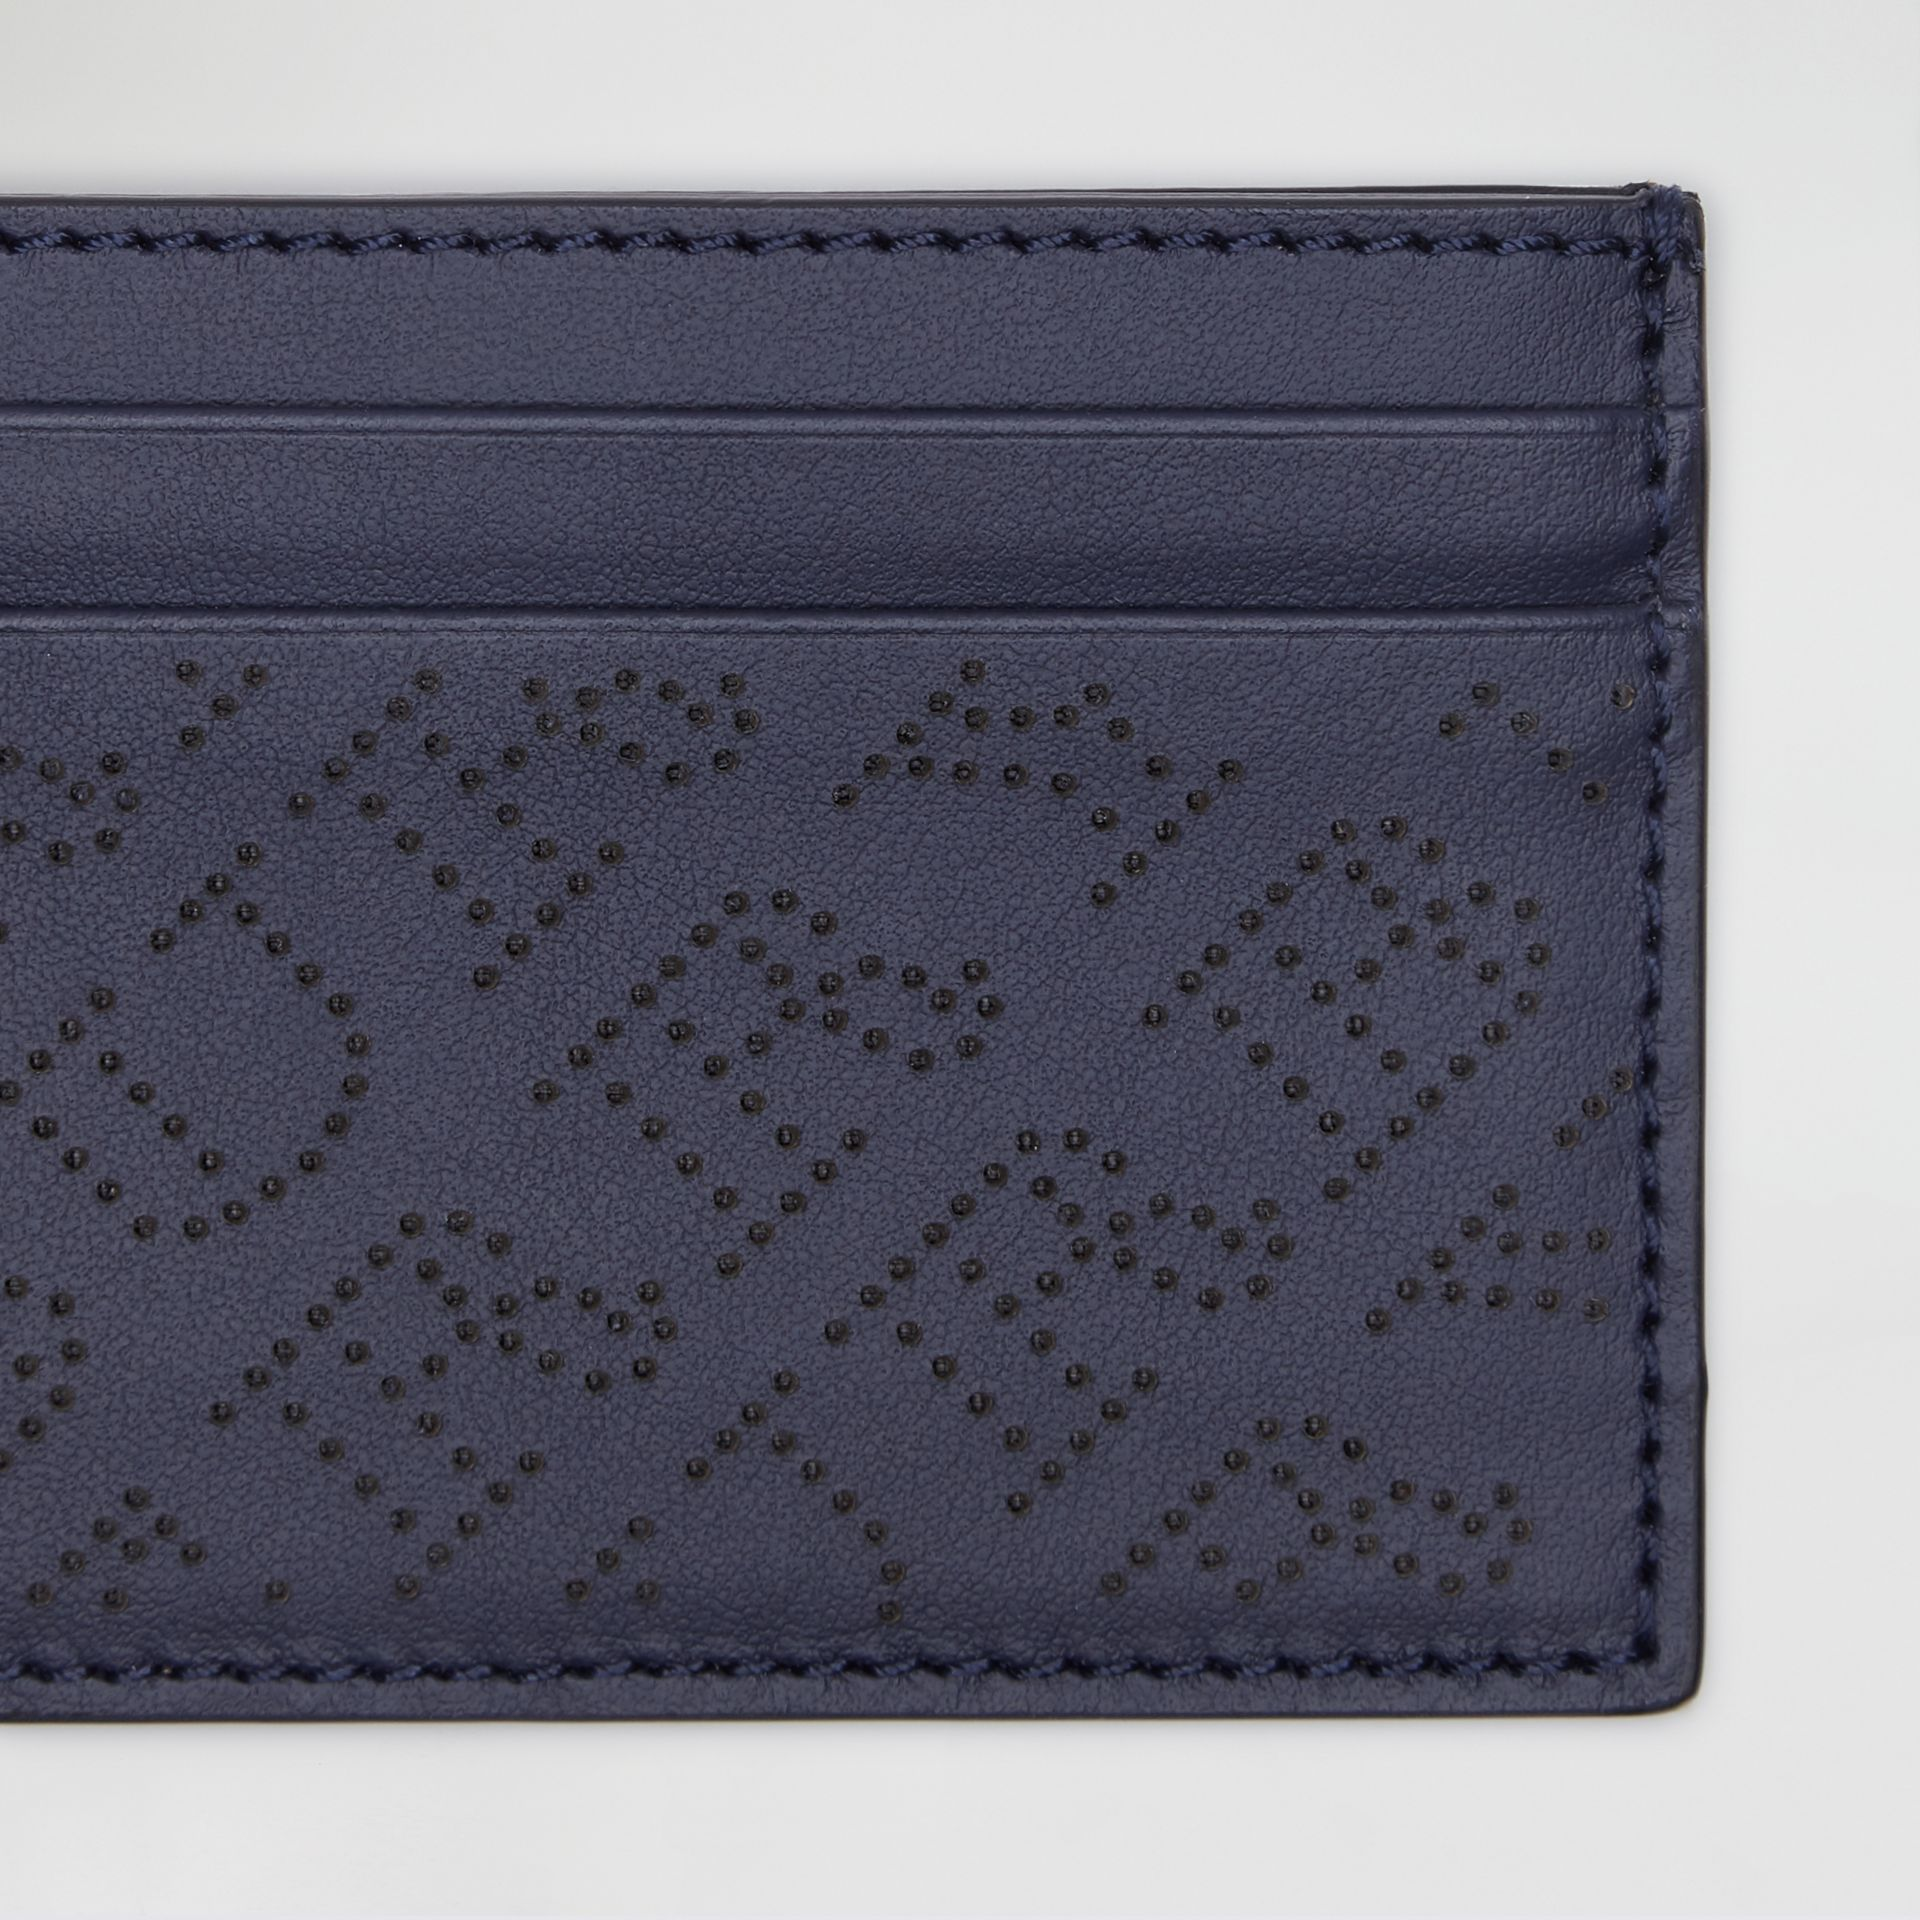 Perforated Logo Leather Card Case in Navy - Women | Burberry Australia - gallery image 1